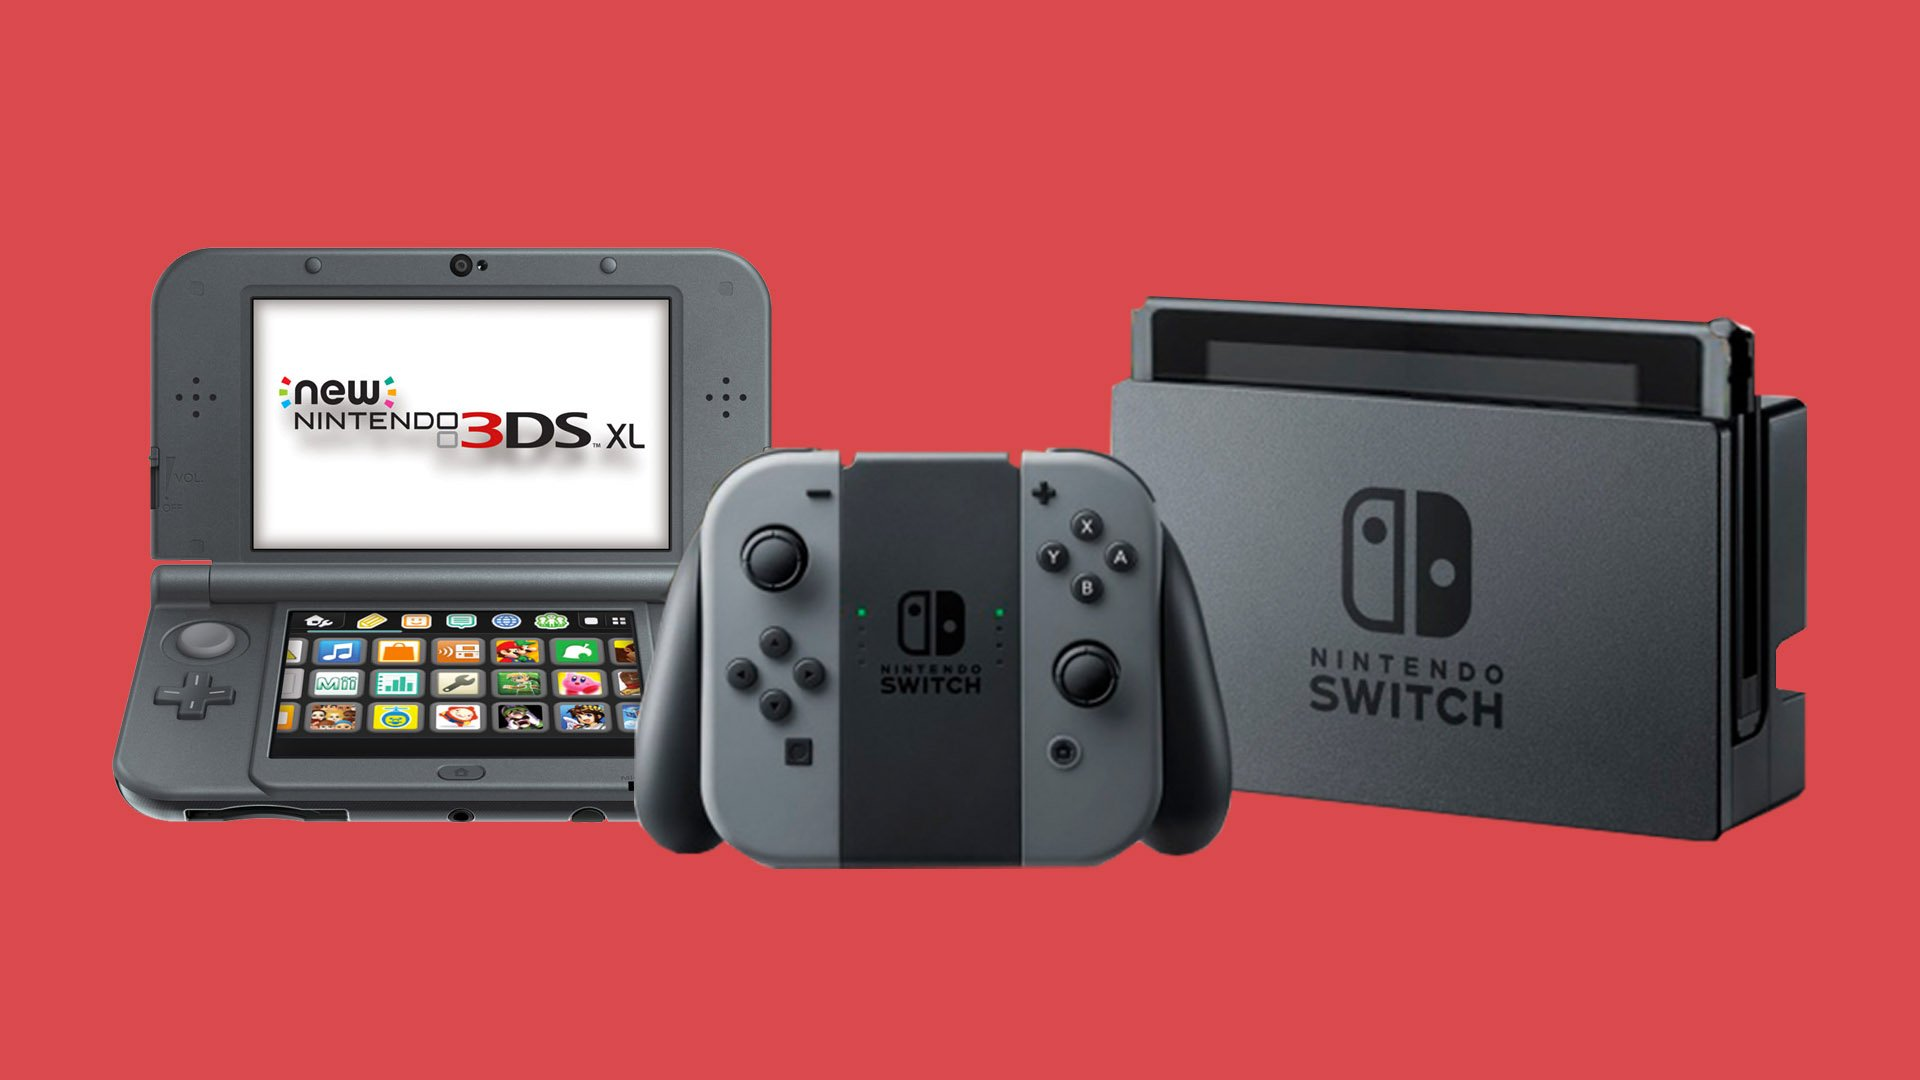 Can the Nintendo Switch play 3DS games